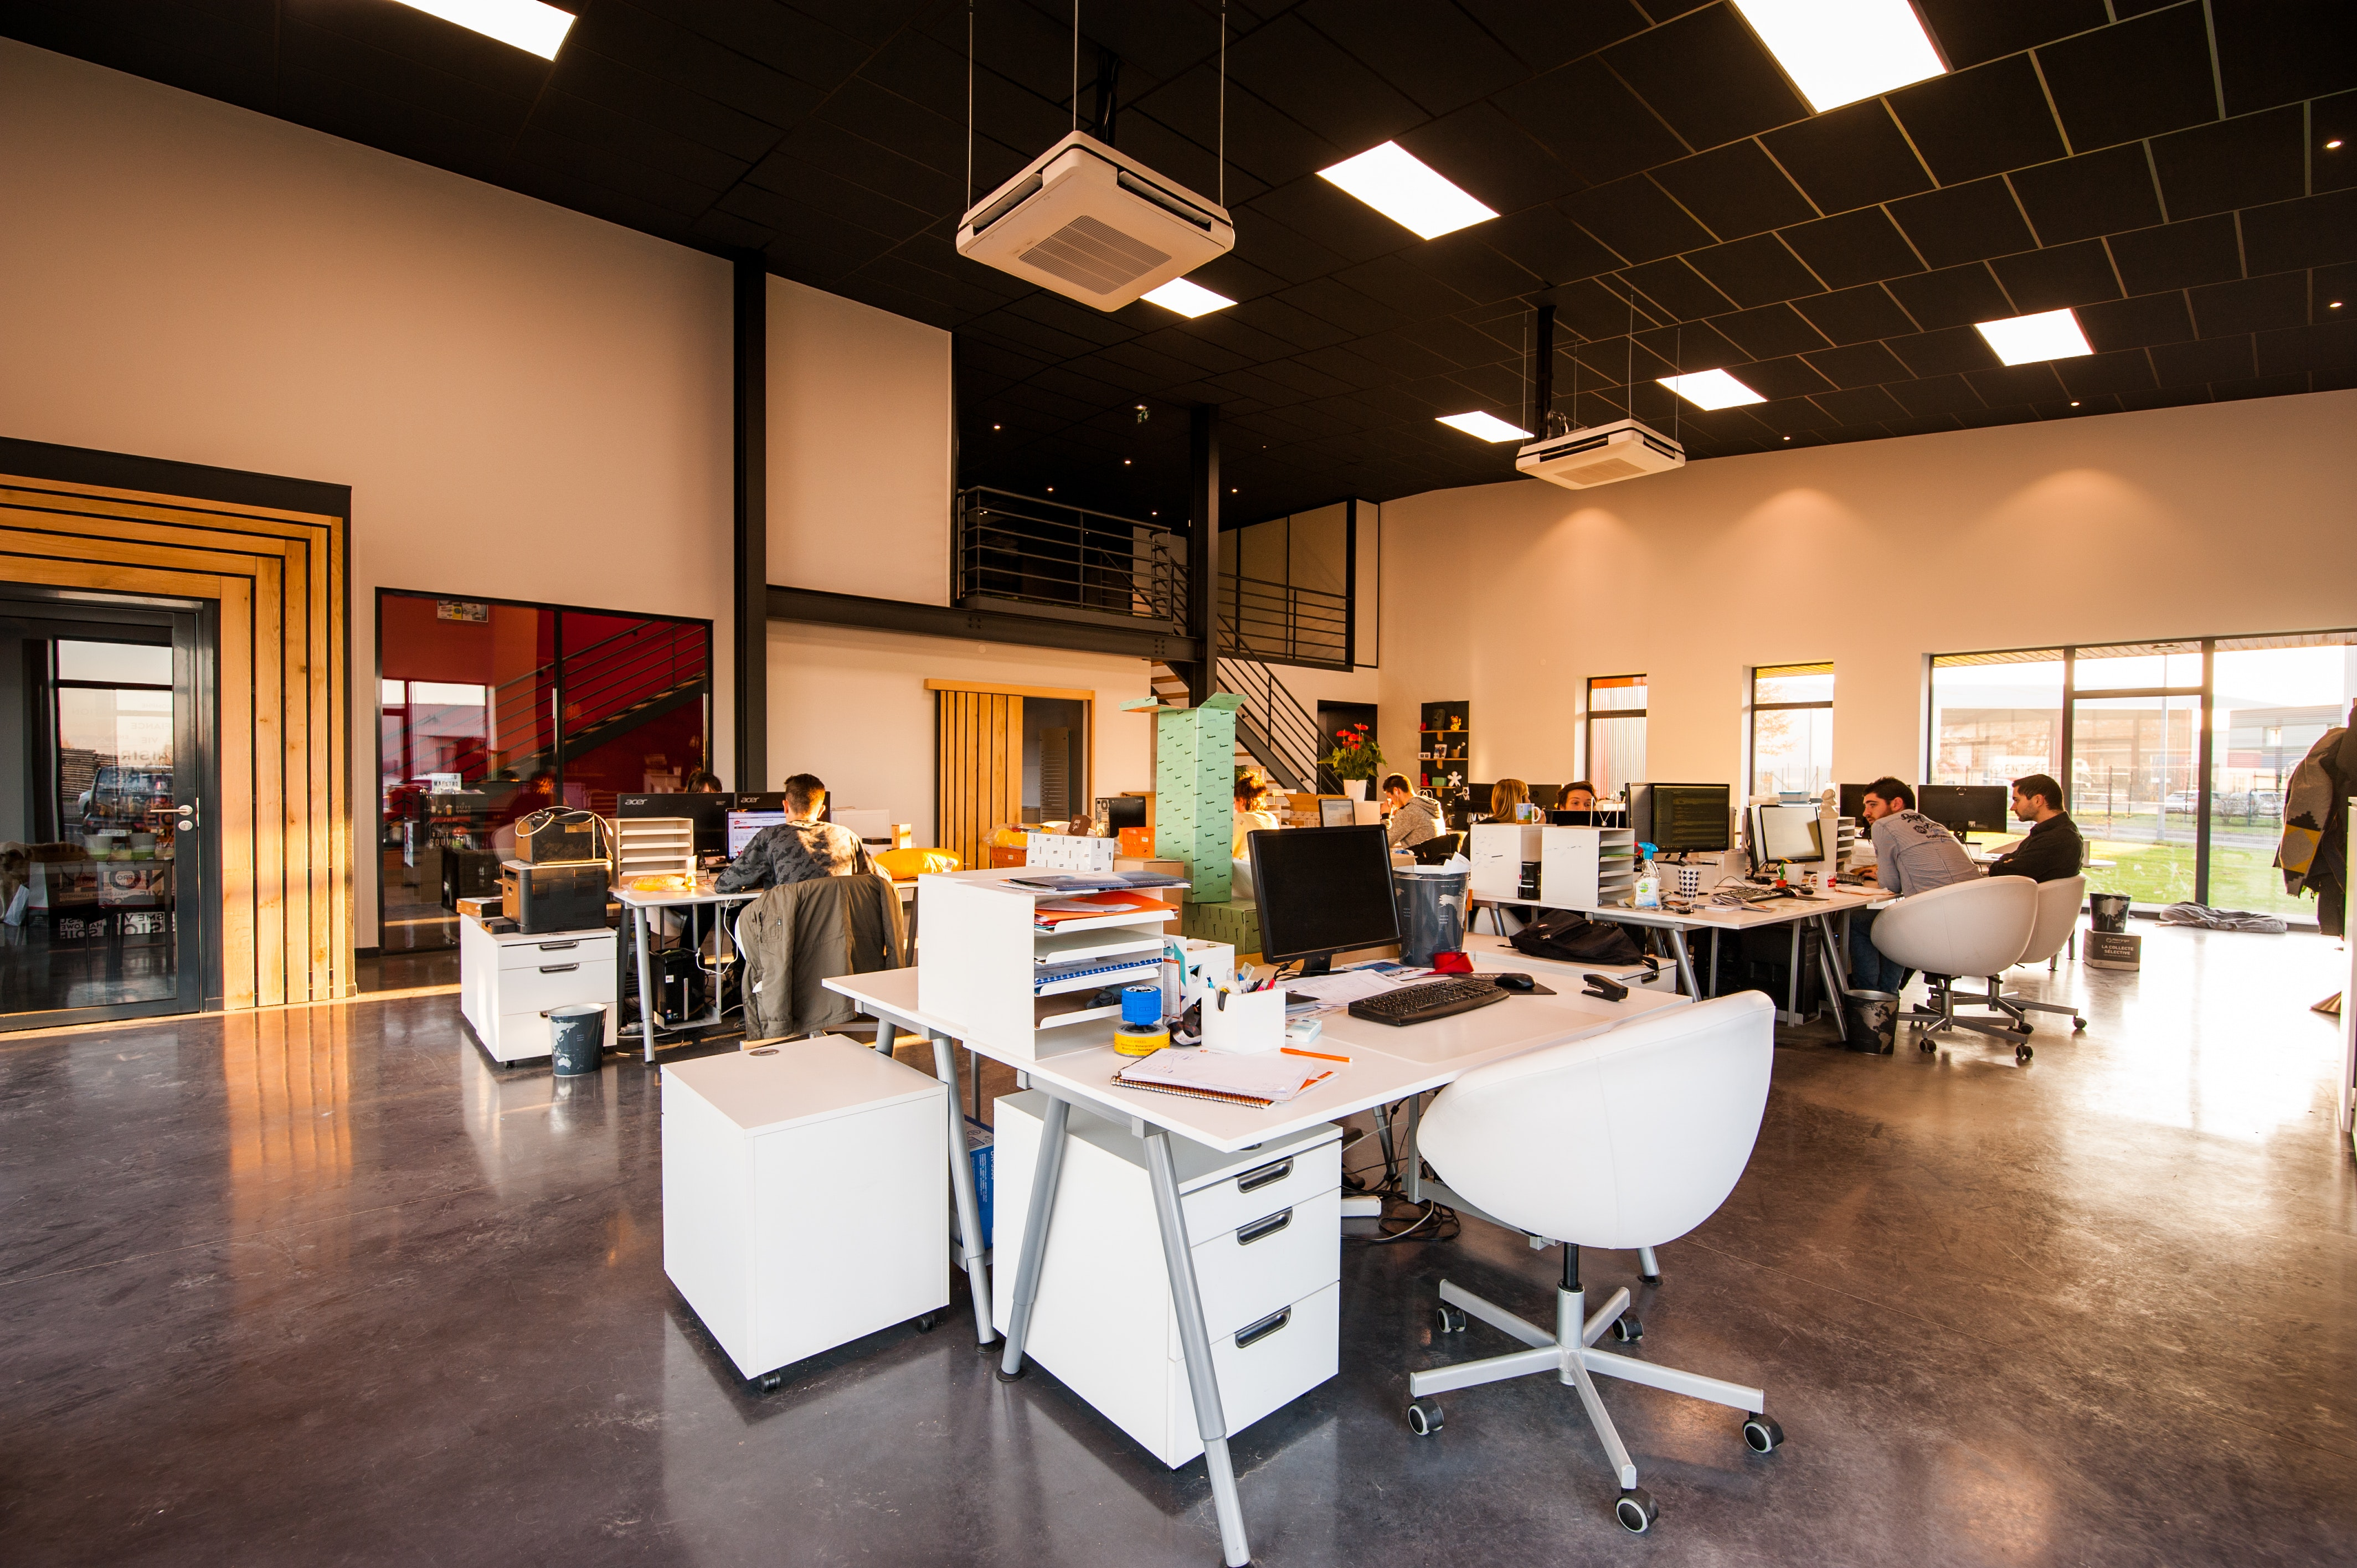 How Covid-19 will change business and workplaces